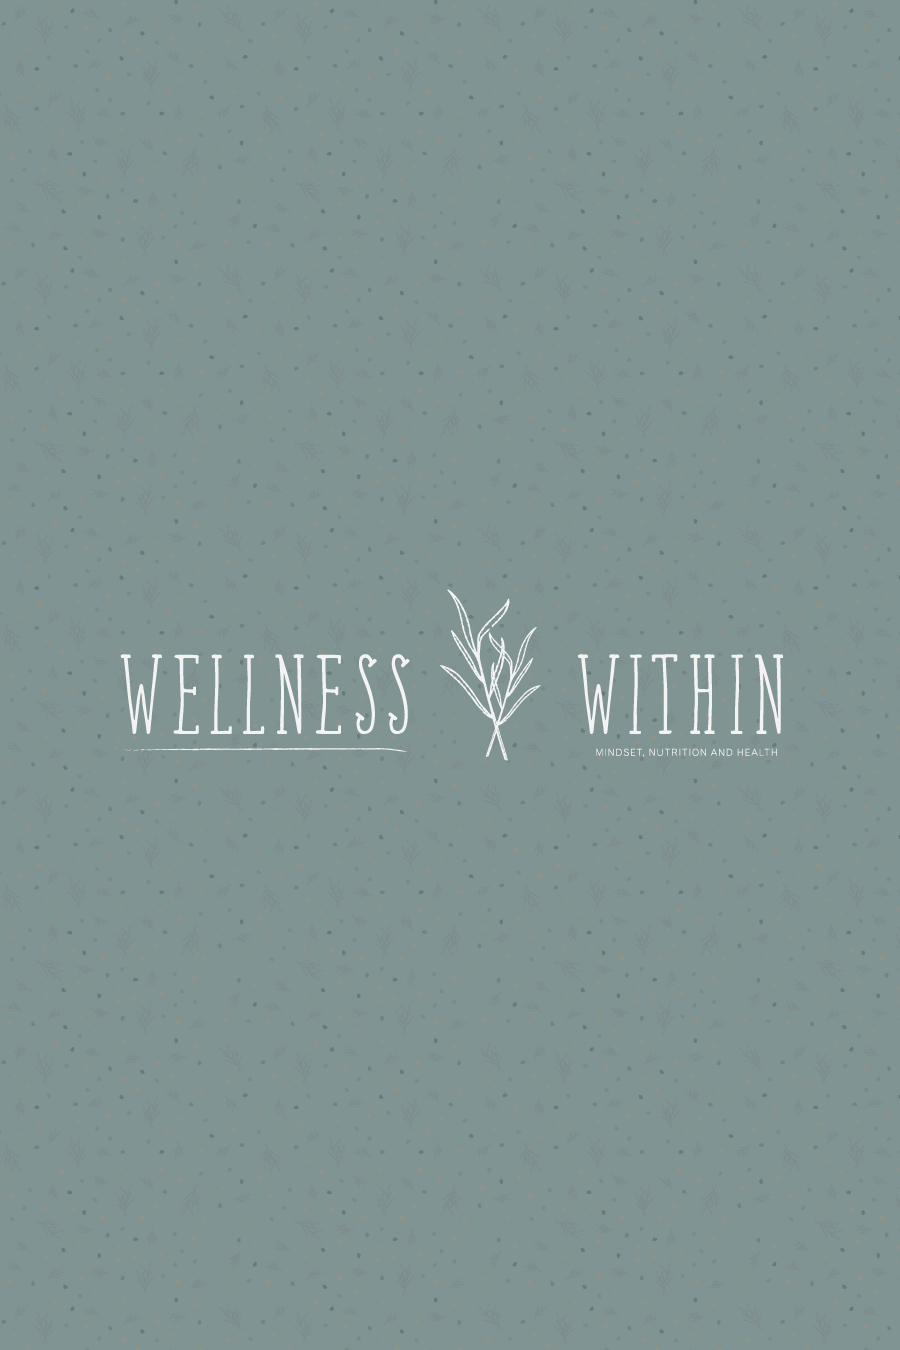 Brand Reveal: Wellness Within